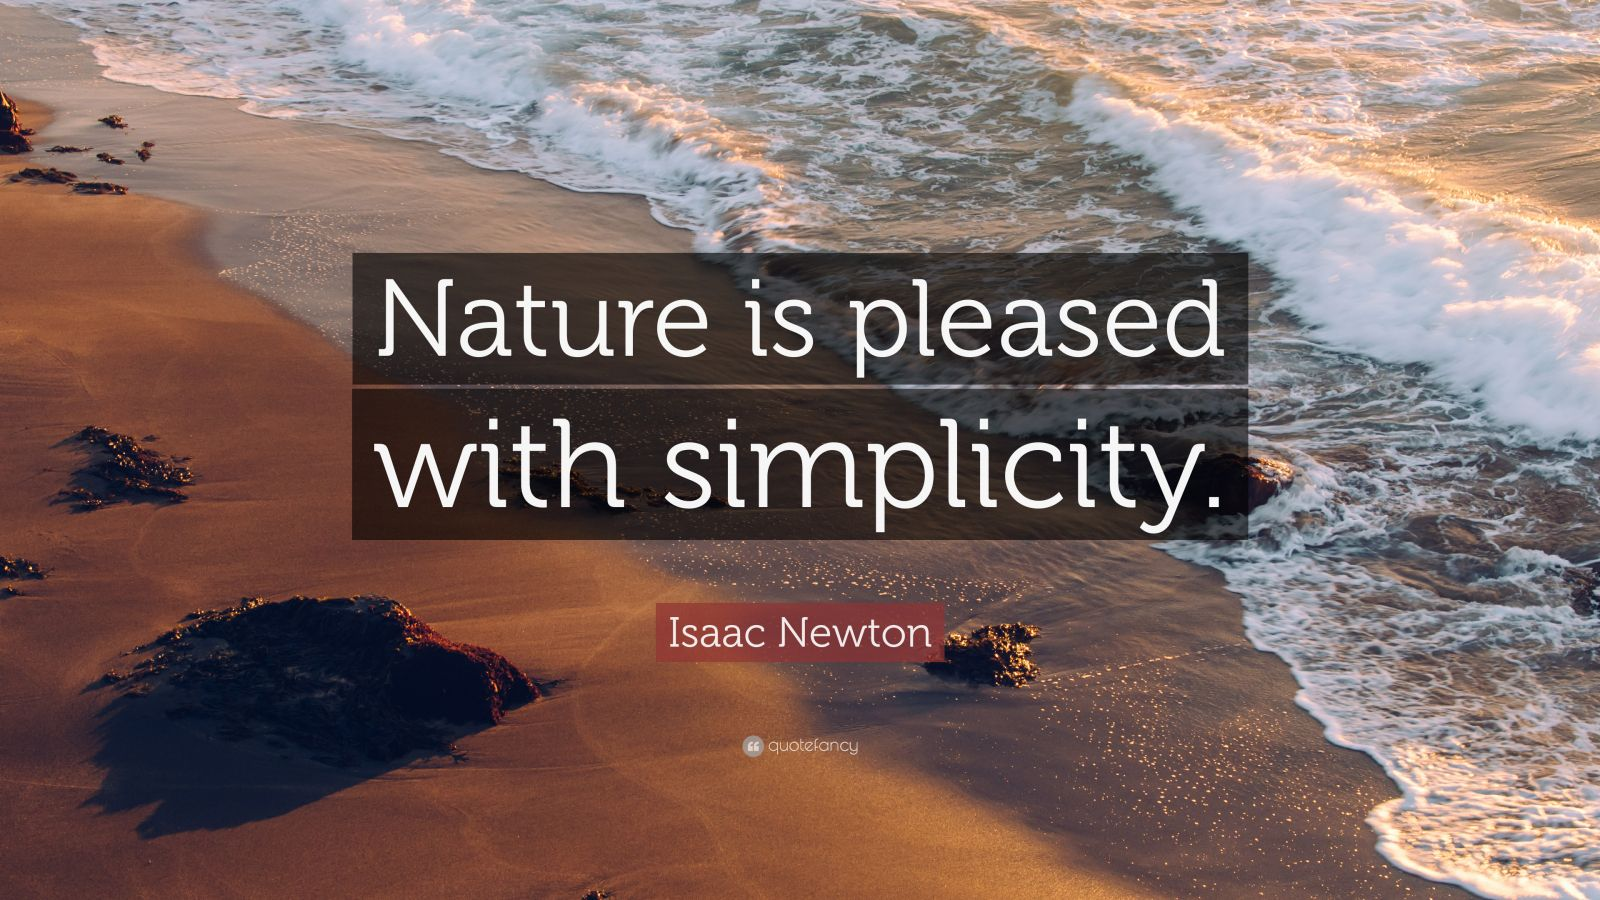 """Isaac Newton Quote """"nature Is Pleased With Simplicity. Inspirational Quotes In Books. Travel Quotes On Tumblr. Family Quotes Jane Eyre. Birthday Quotes Pictures. Love Quotes Engagement Announcement. Independence Day Quotes John Lennon. Faith Quotes Thomas S Monson. Quotes On Adventure And Exploration"""